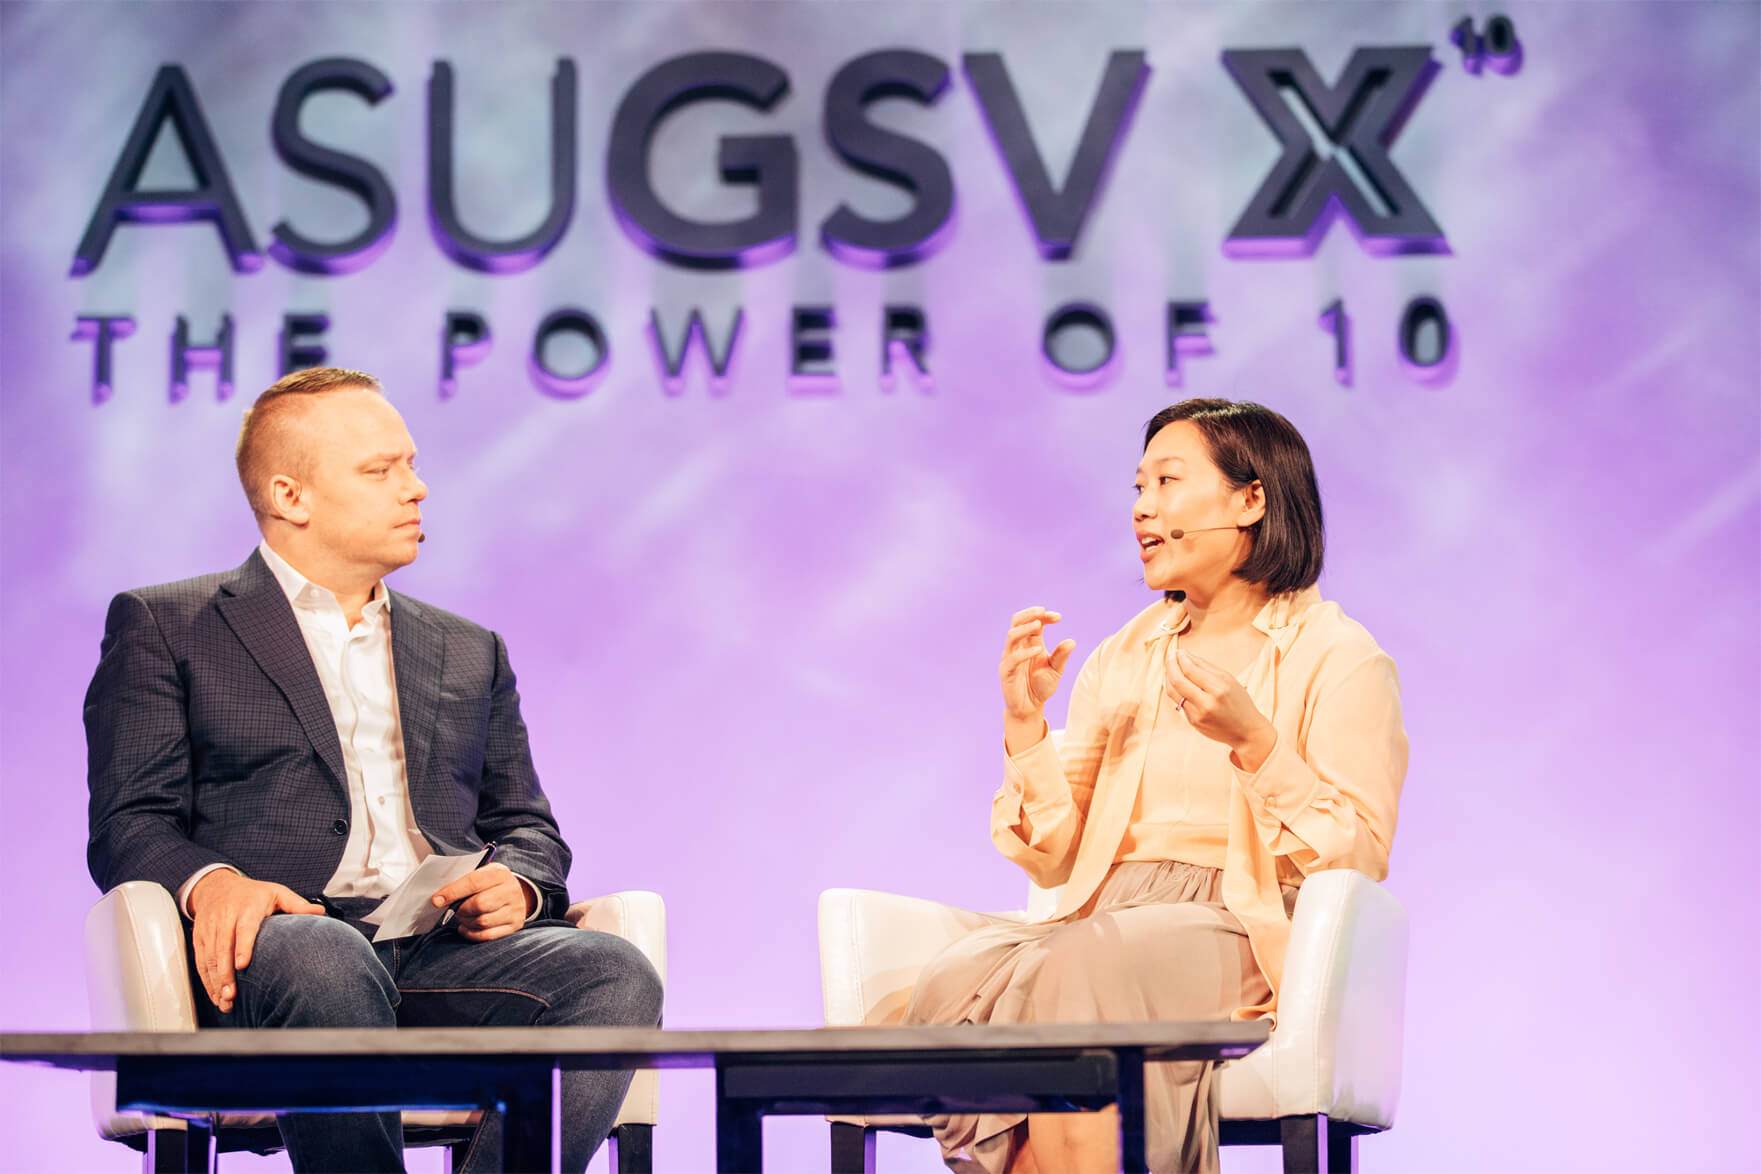 Priscilla Chan speaking at ASU-GSV